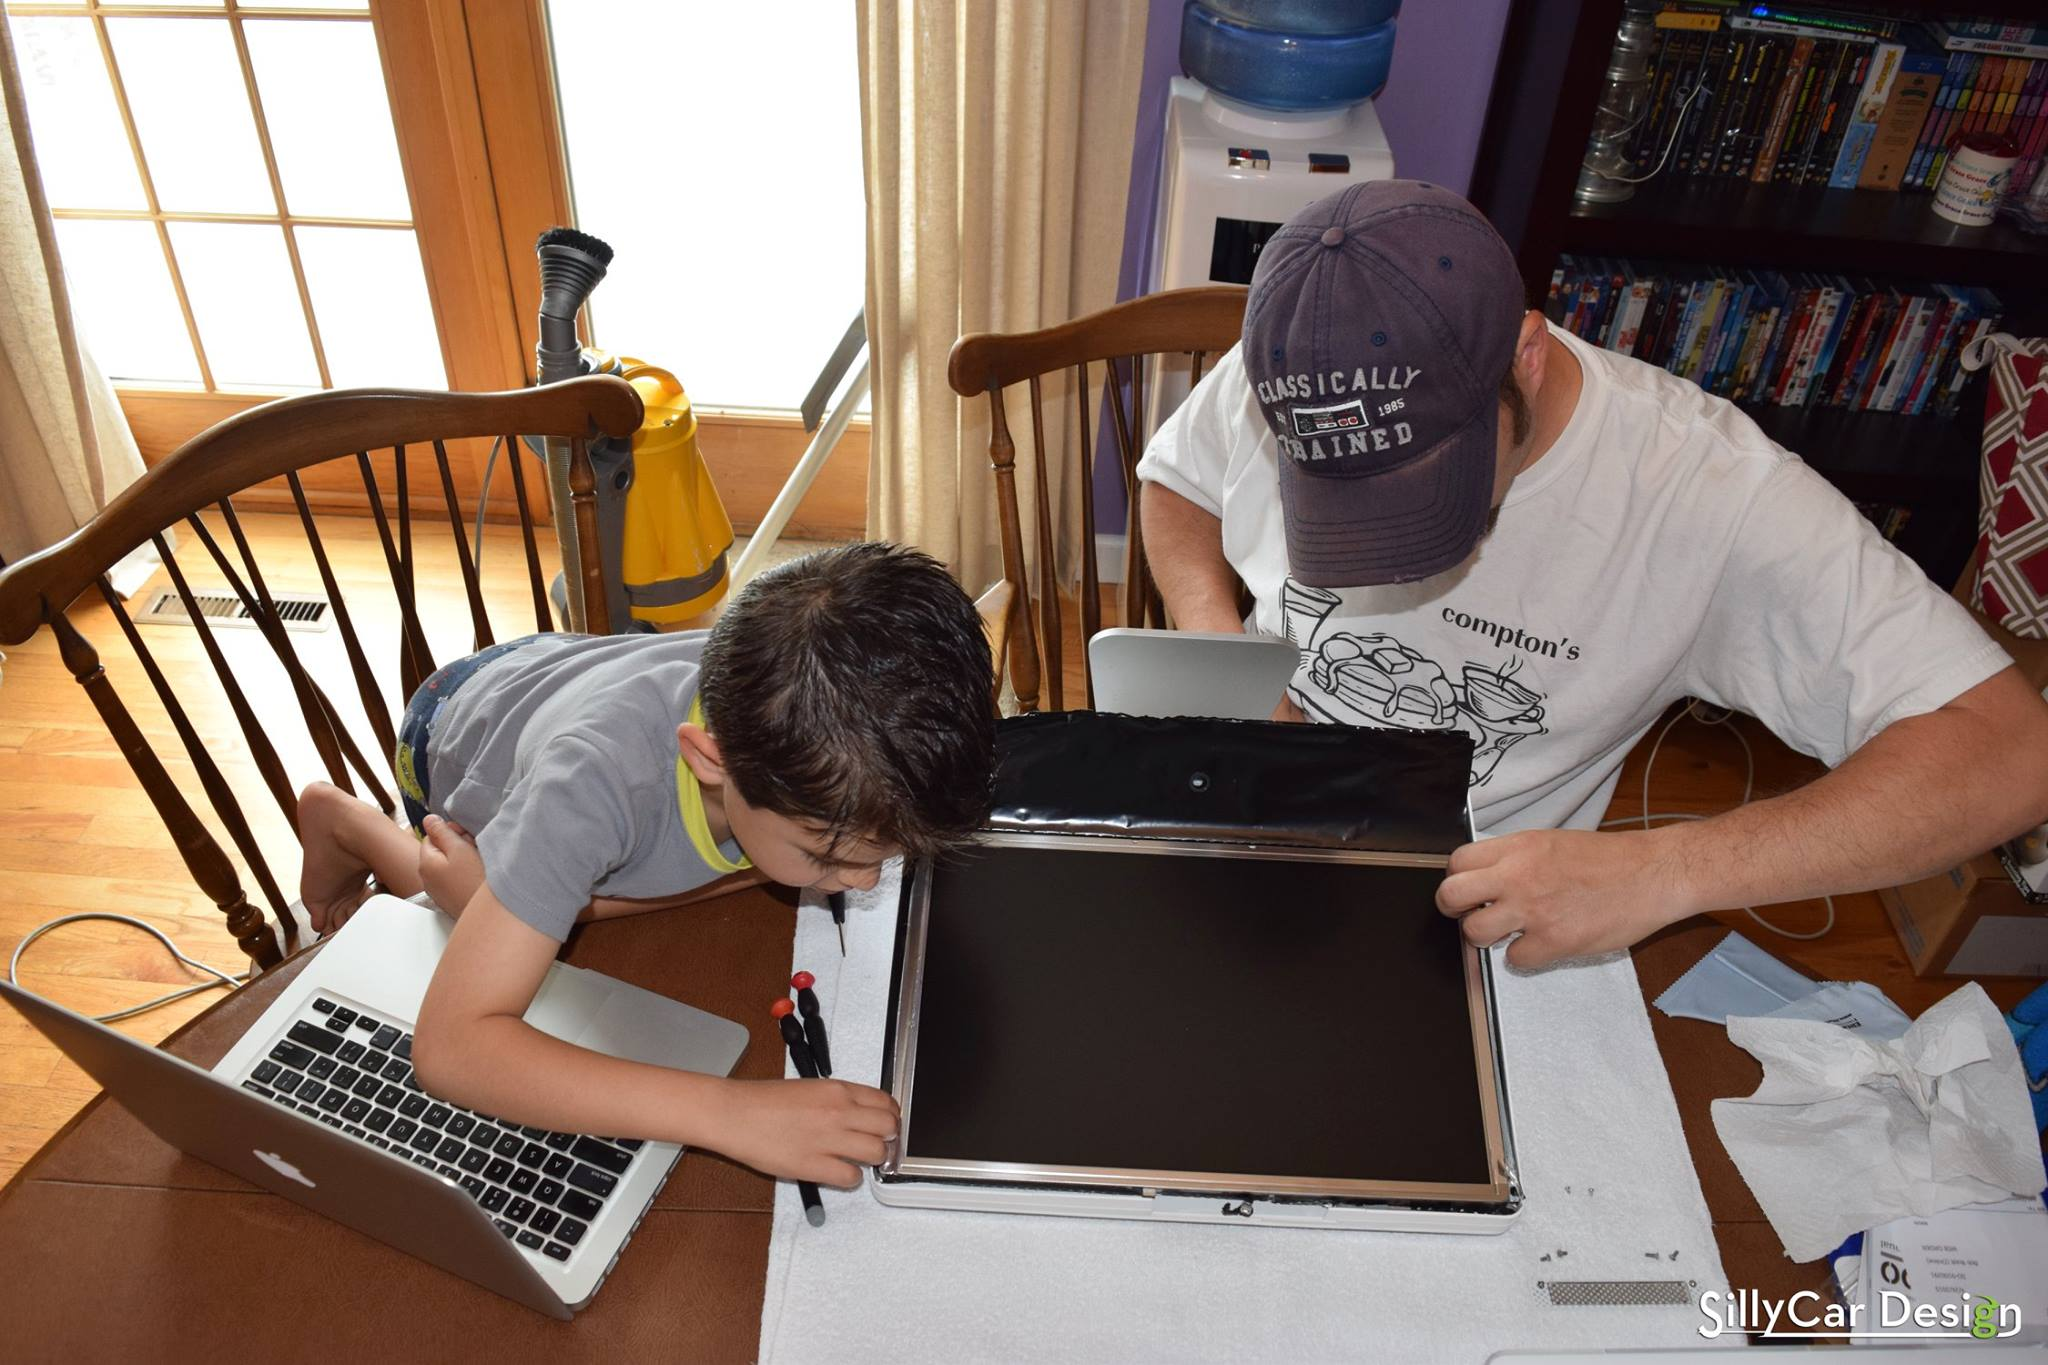 Photo of Joel and Jack Glastetter working together to repair an iMac.